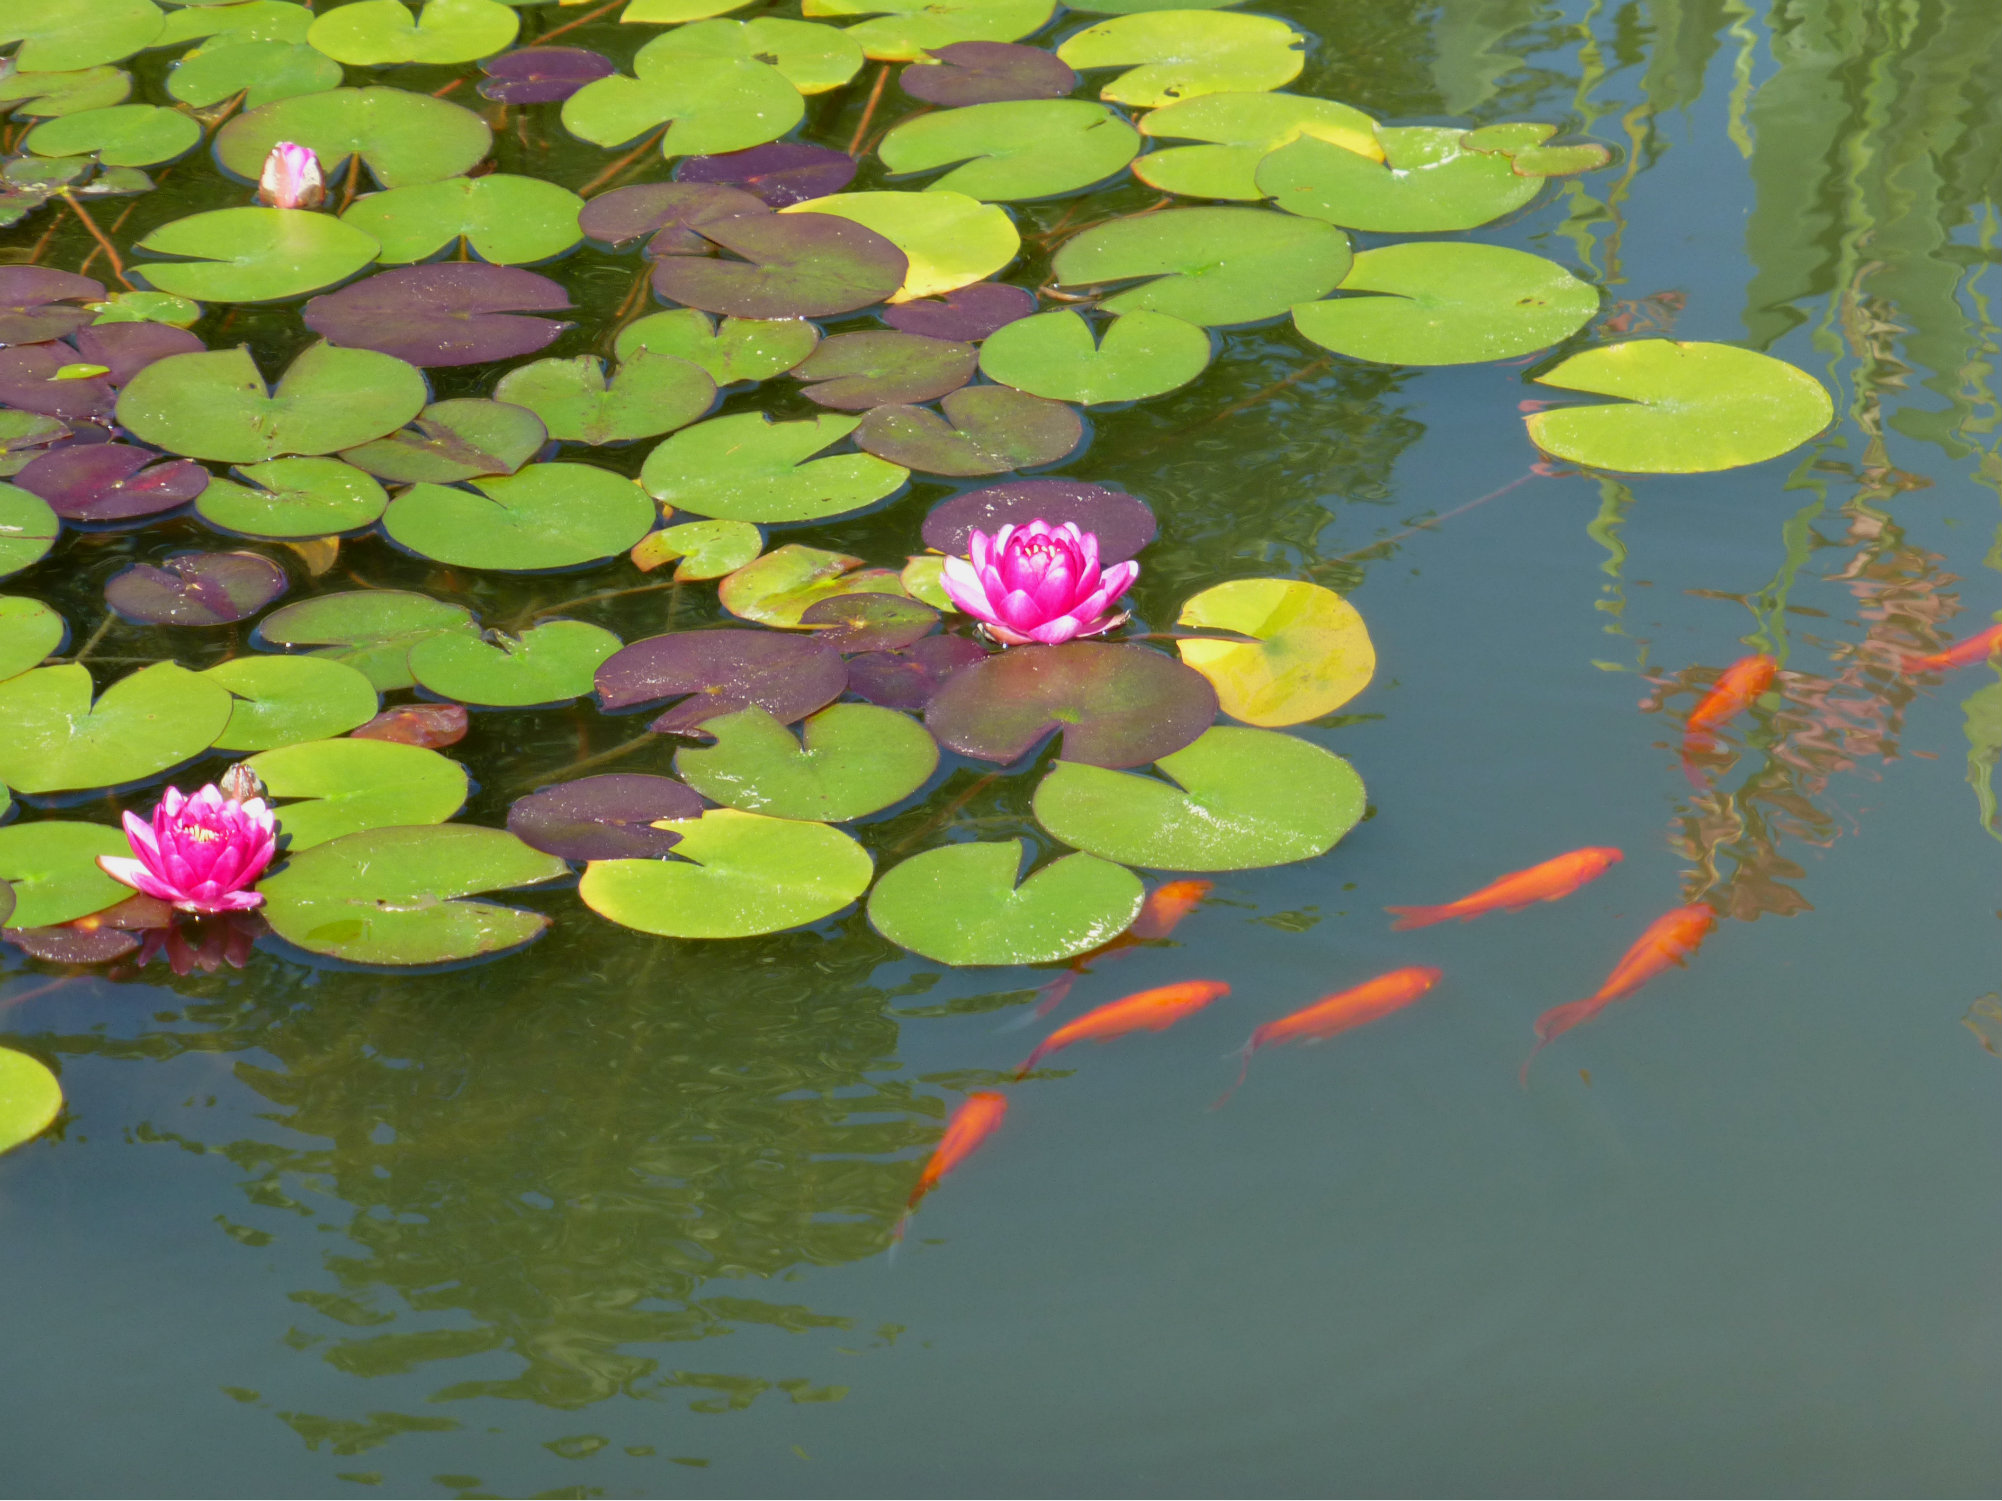 Biltmore Italian Garden Orange Fish and Pink Lilypad Flowers Sept 2012